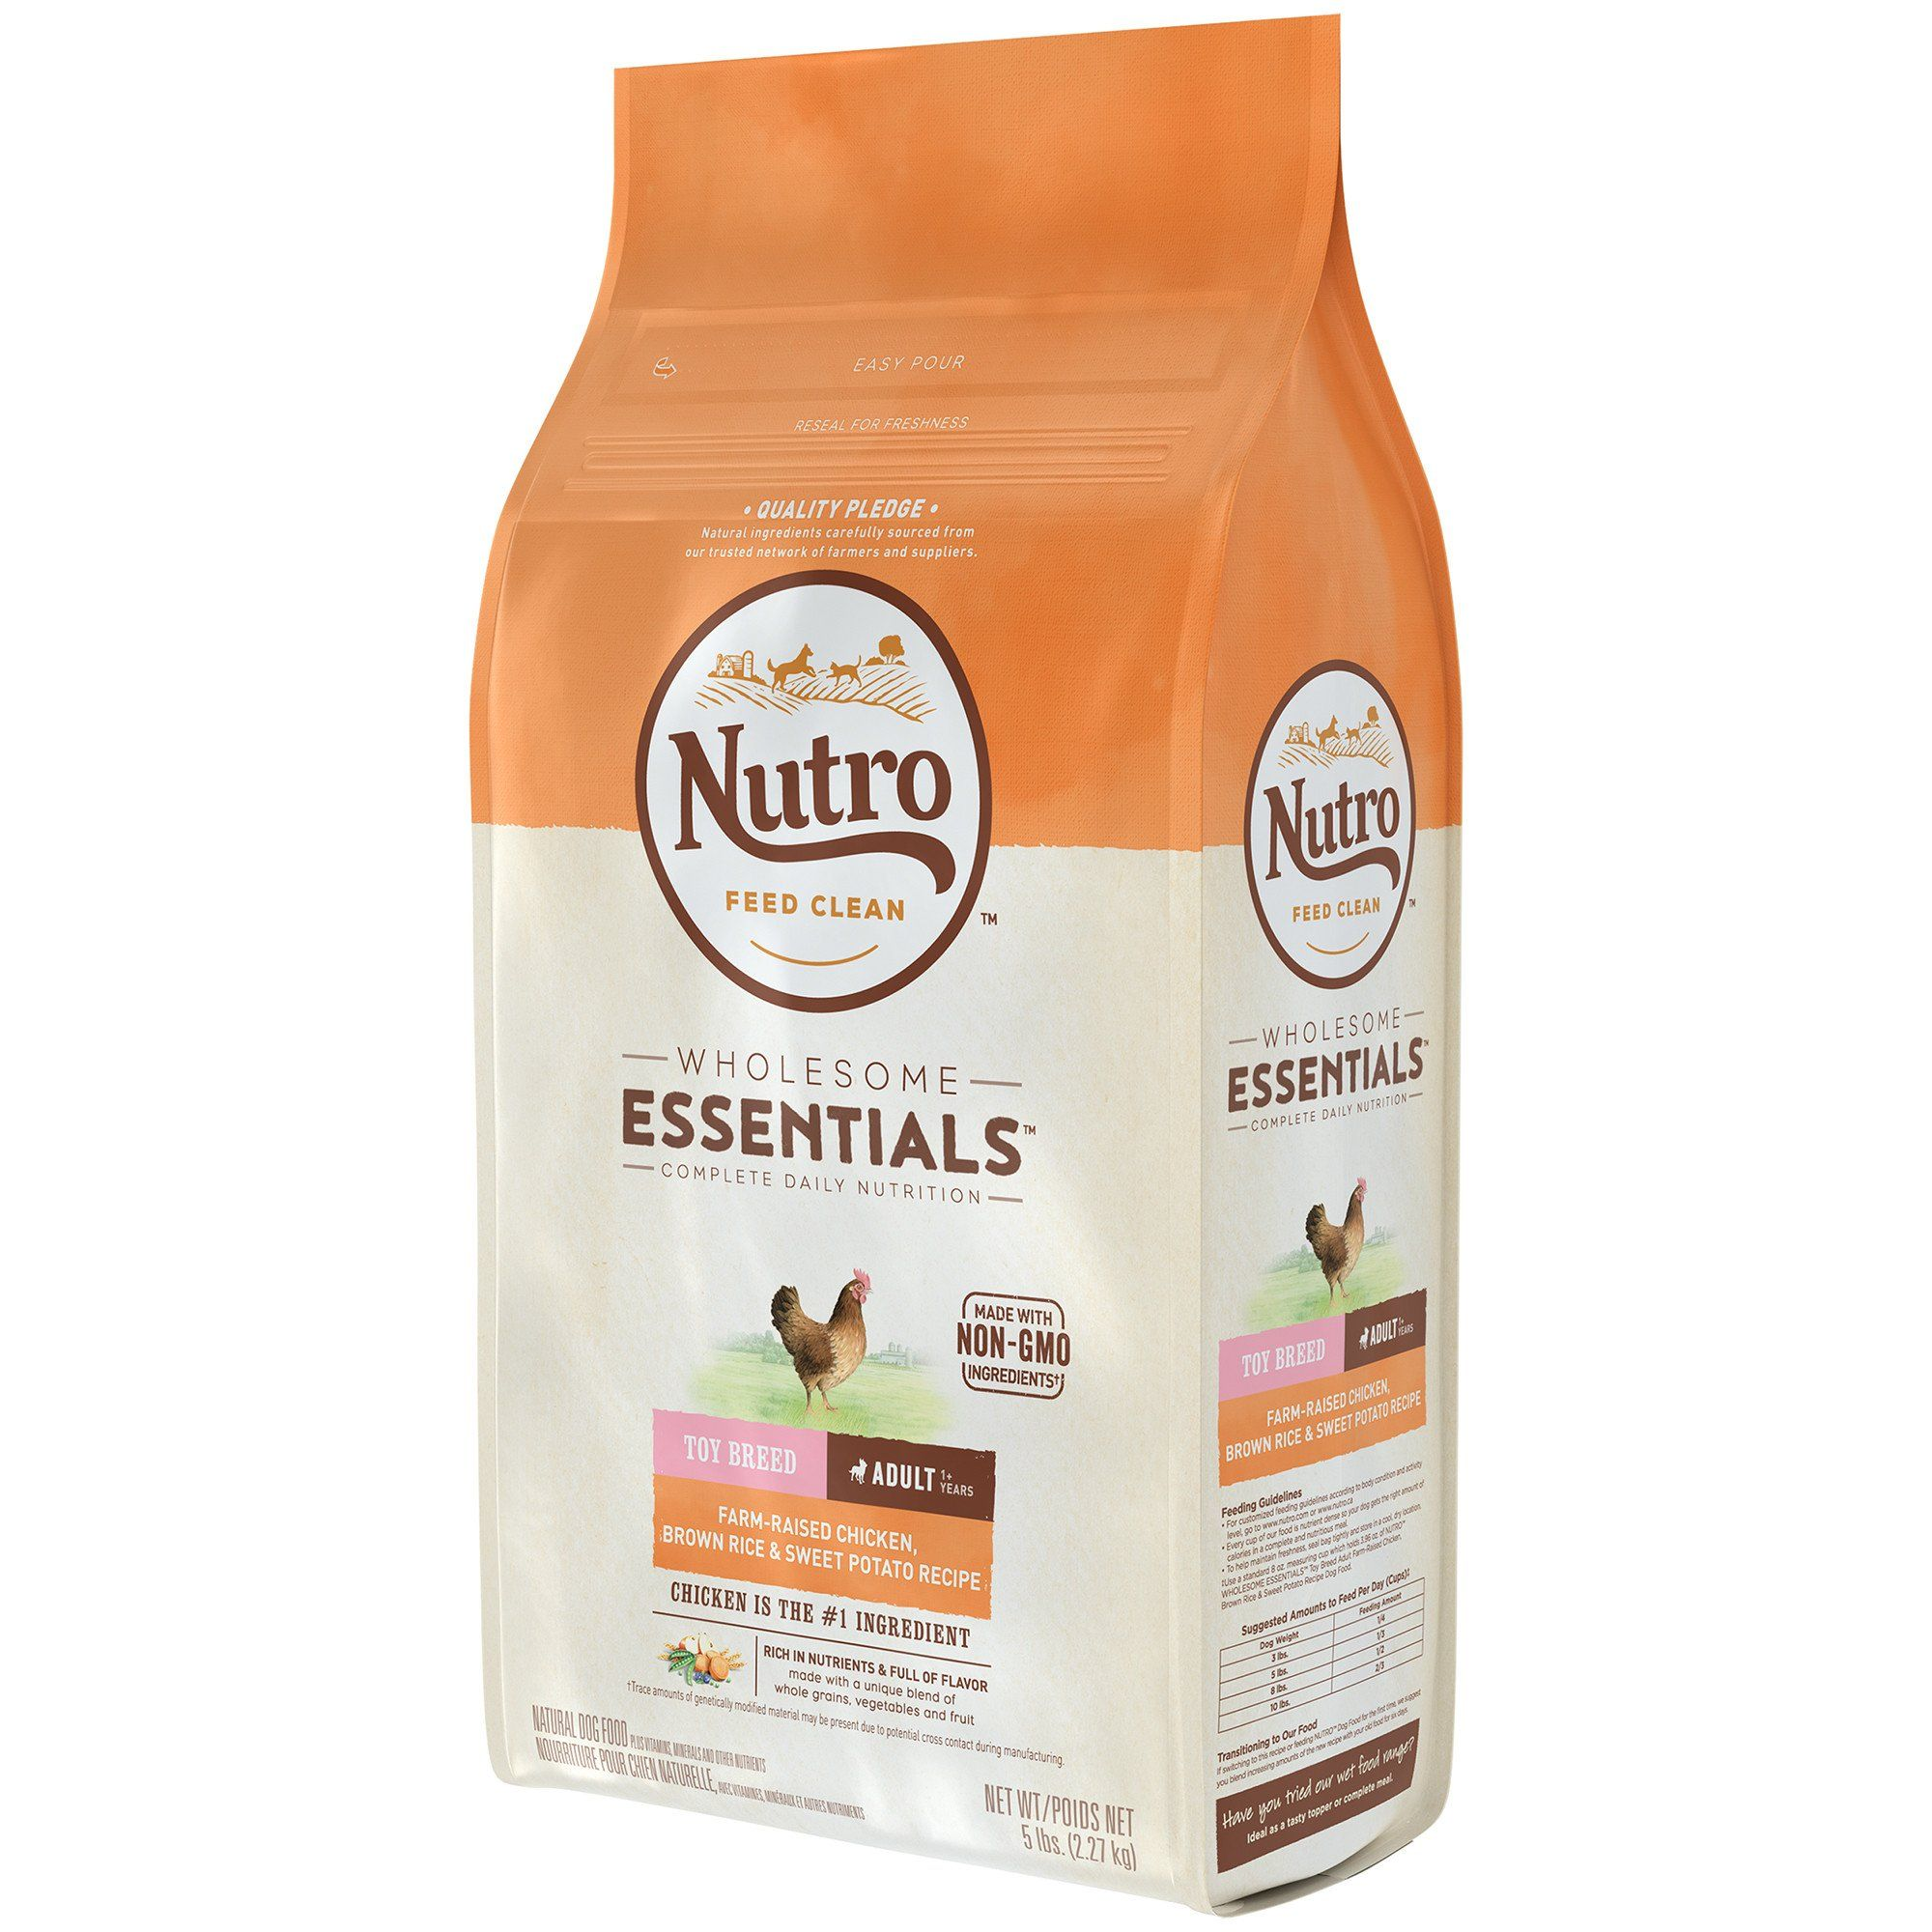 Nutro Wholesome Essentials Farm Raised Chicken Brown Rice Sweet